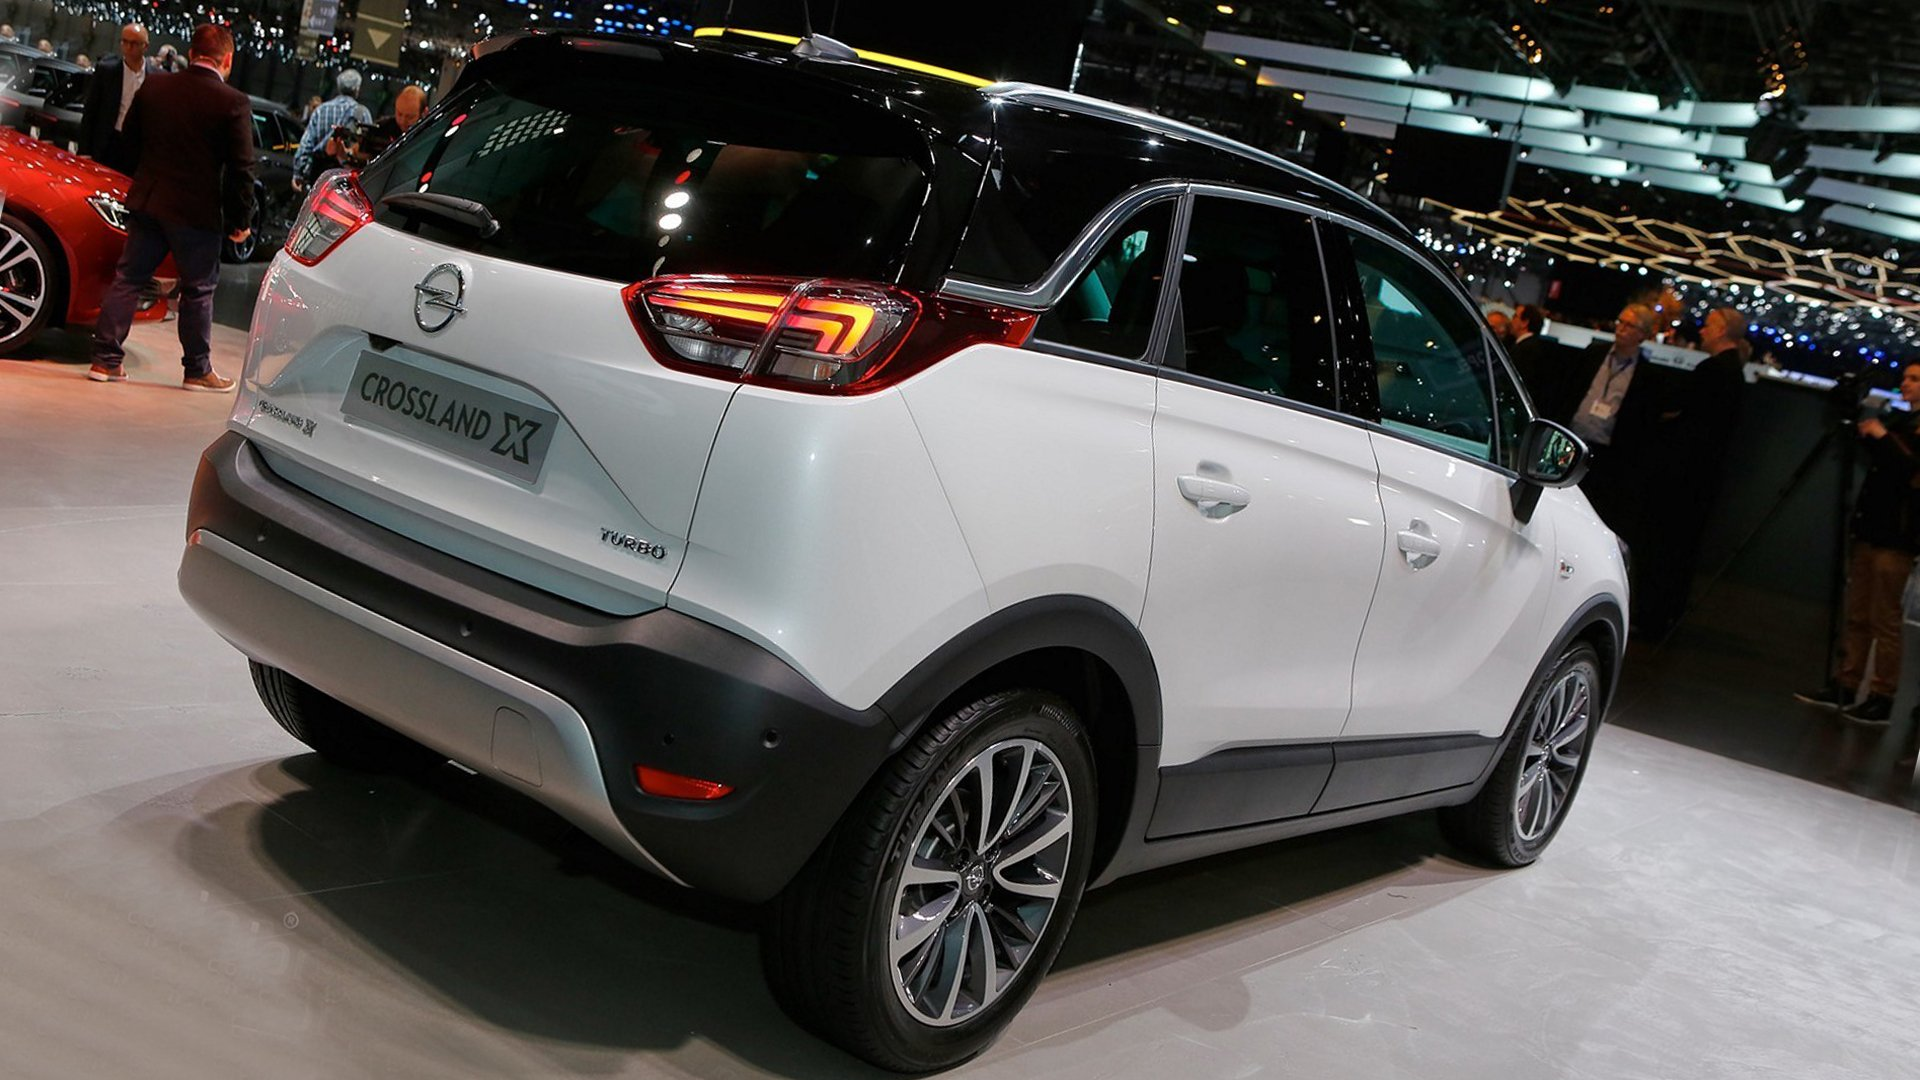 Opel Crossland X Diesel Engine HD